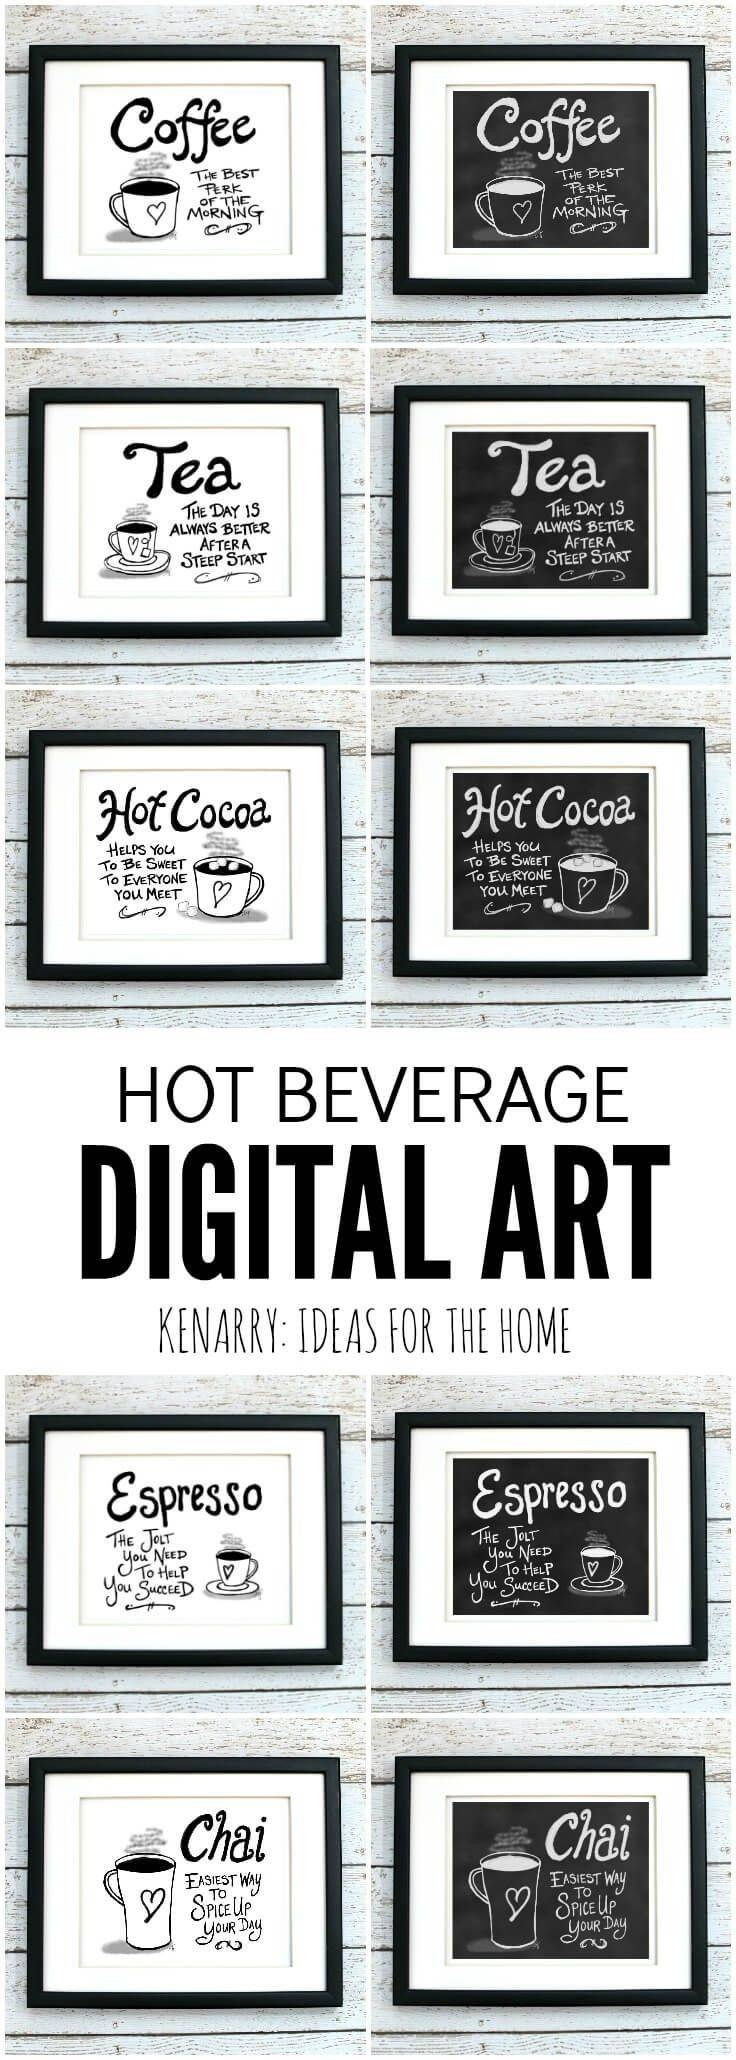 25+ Unique Coffee Wall Art Ideas On Pinterest | Coffe Shop For Best And Newest Cafe Latte Kitchen Wall Art (View 17 of 30)